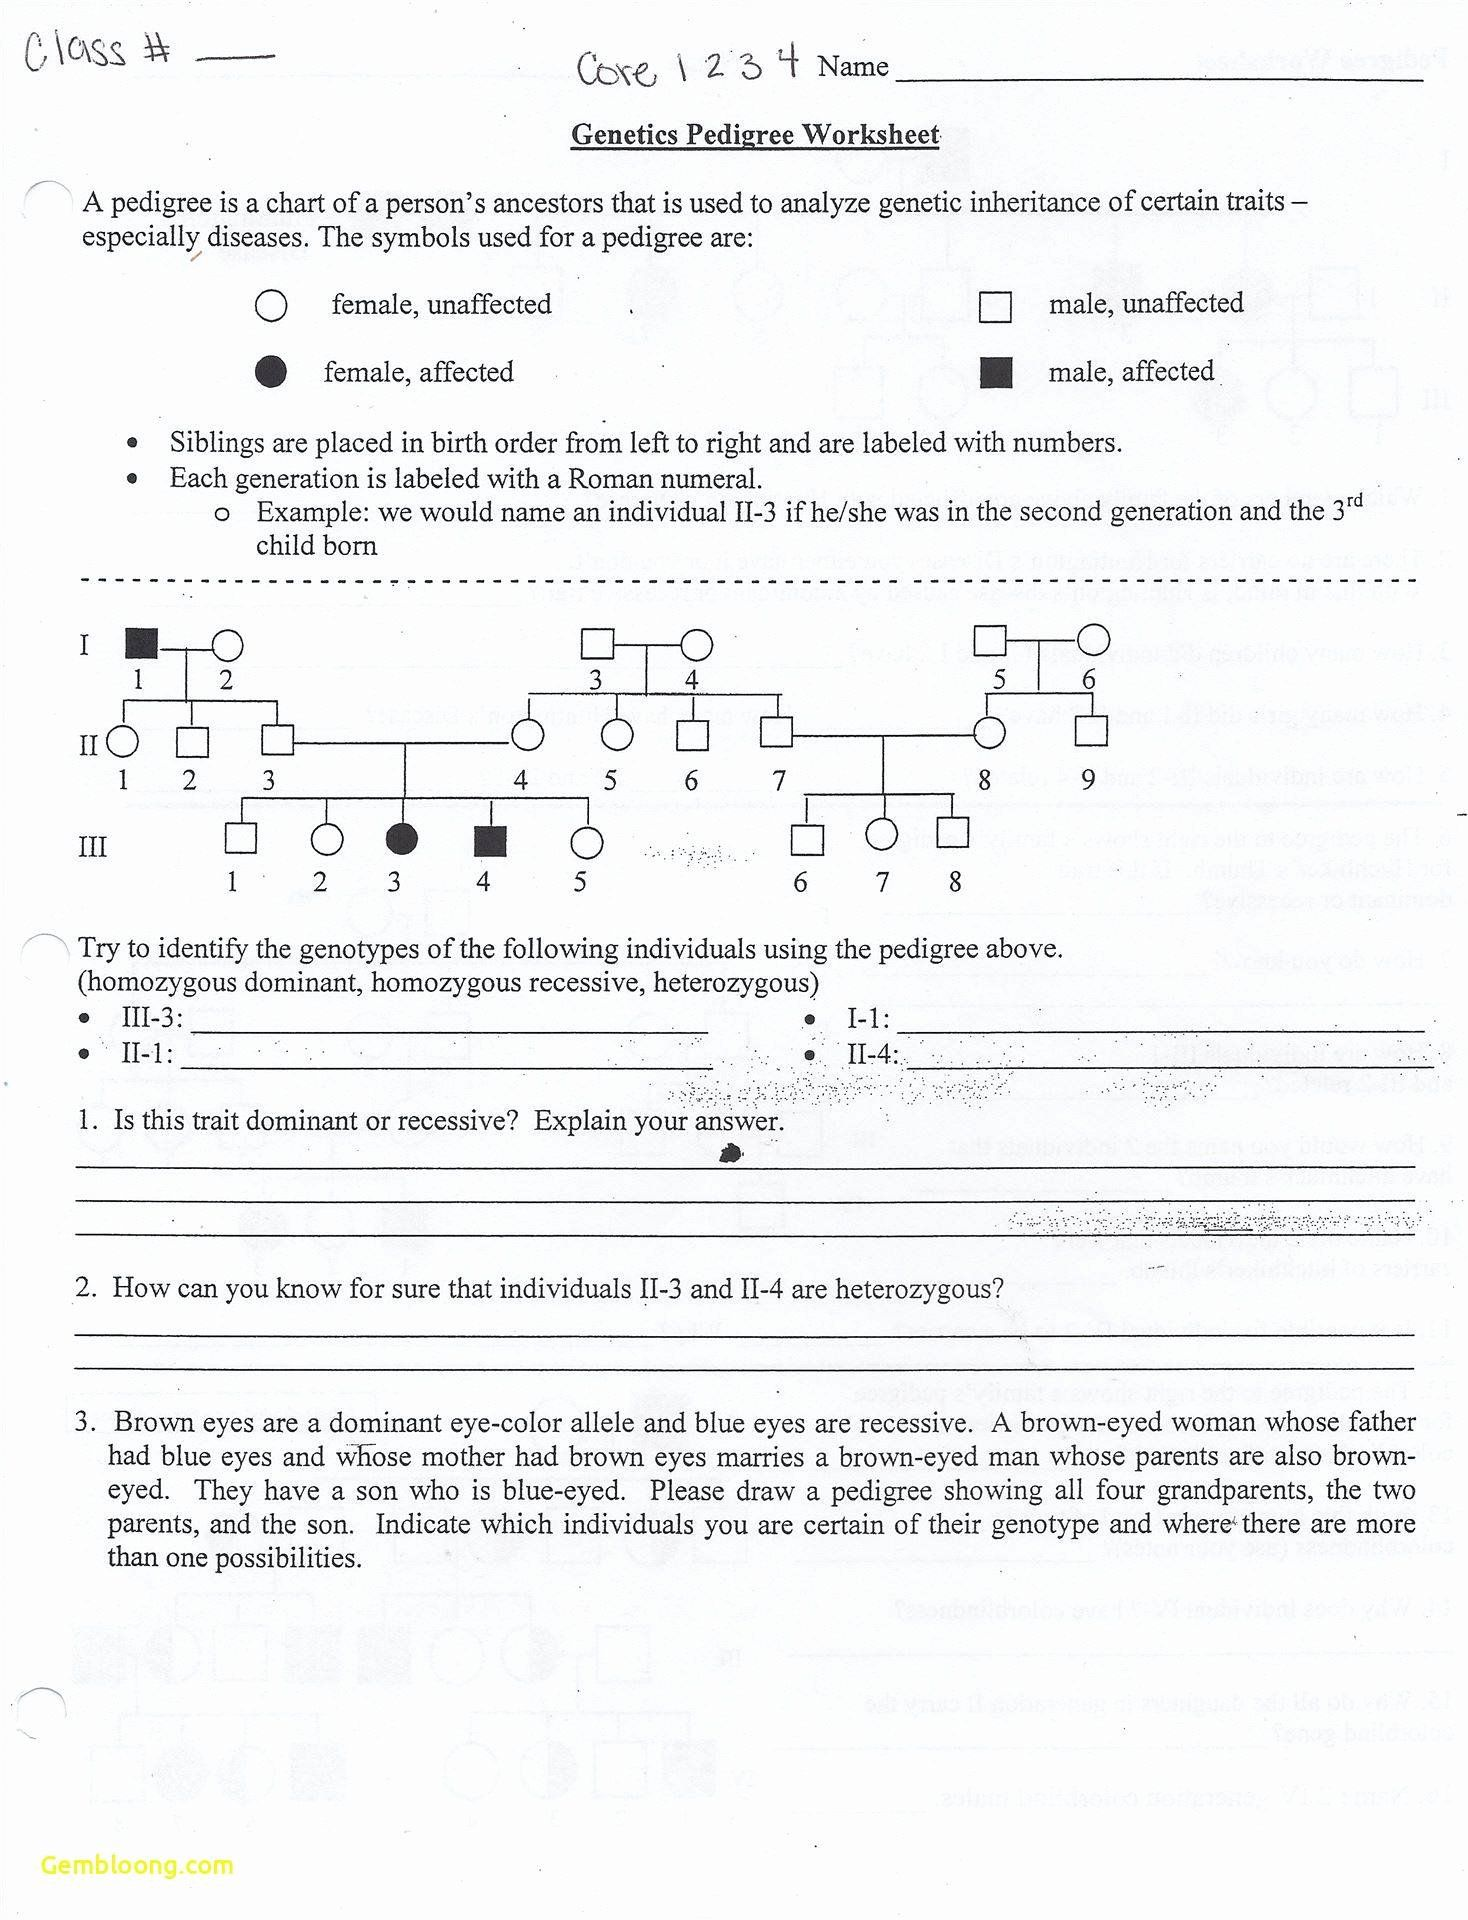 Worksheet Answer Key Practices worksheets